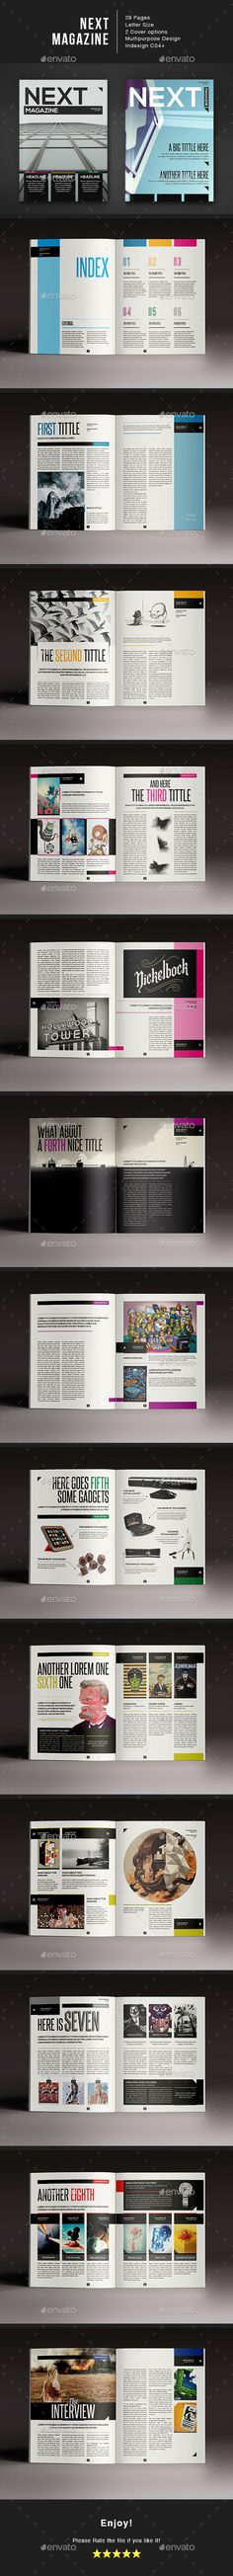 Next Magazine Template InDesign INDD #design Download: http://graphicriver.net/item/next-magazine-indesign-template/14445344?ref=ksioks